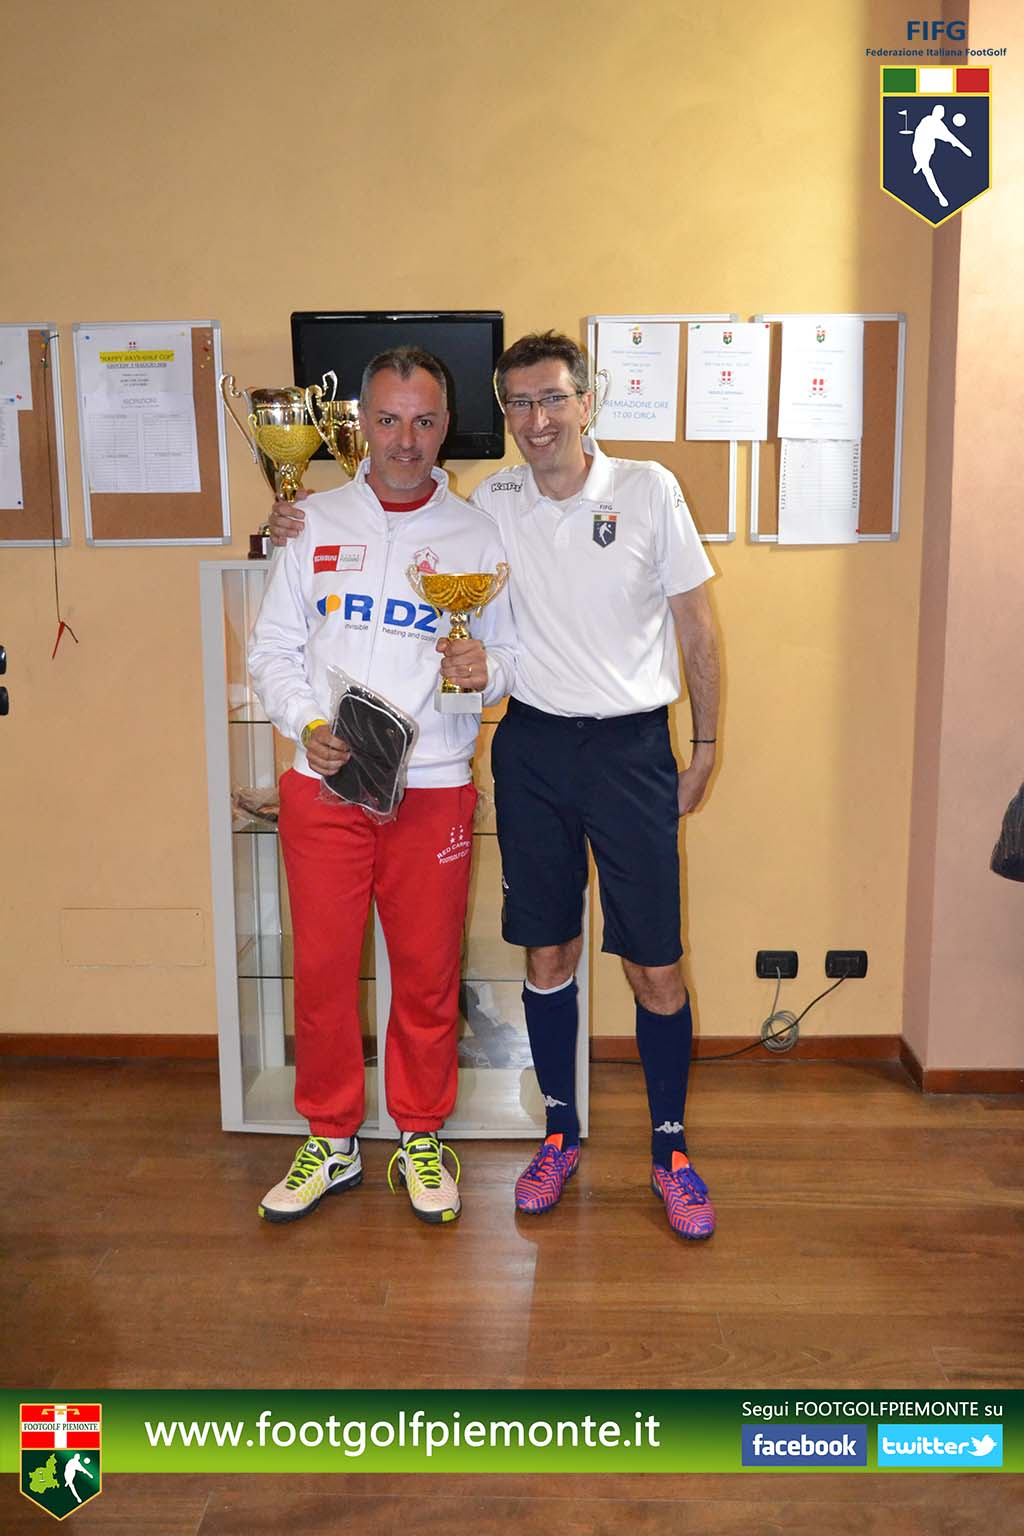 FOTO 9 Regions' Cup Footgolf Piemonte 2016 Golf Città di Asti (At) 30apr16-124